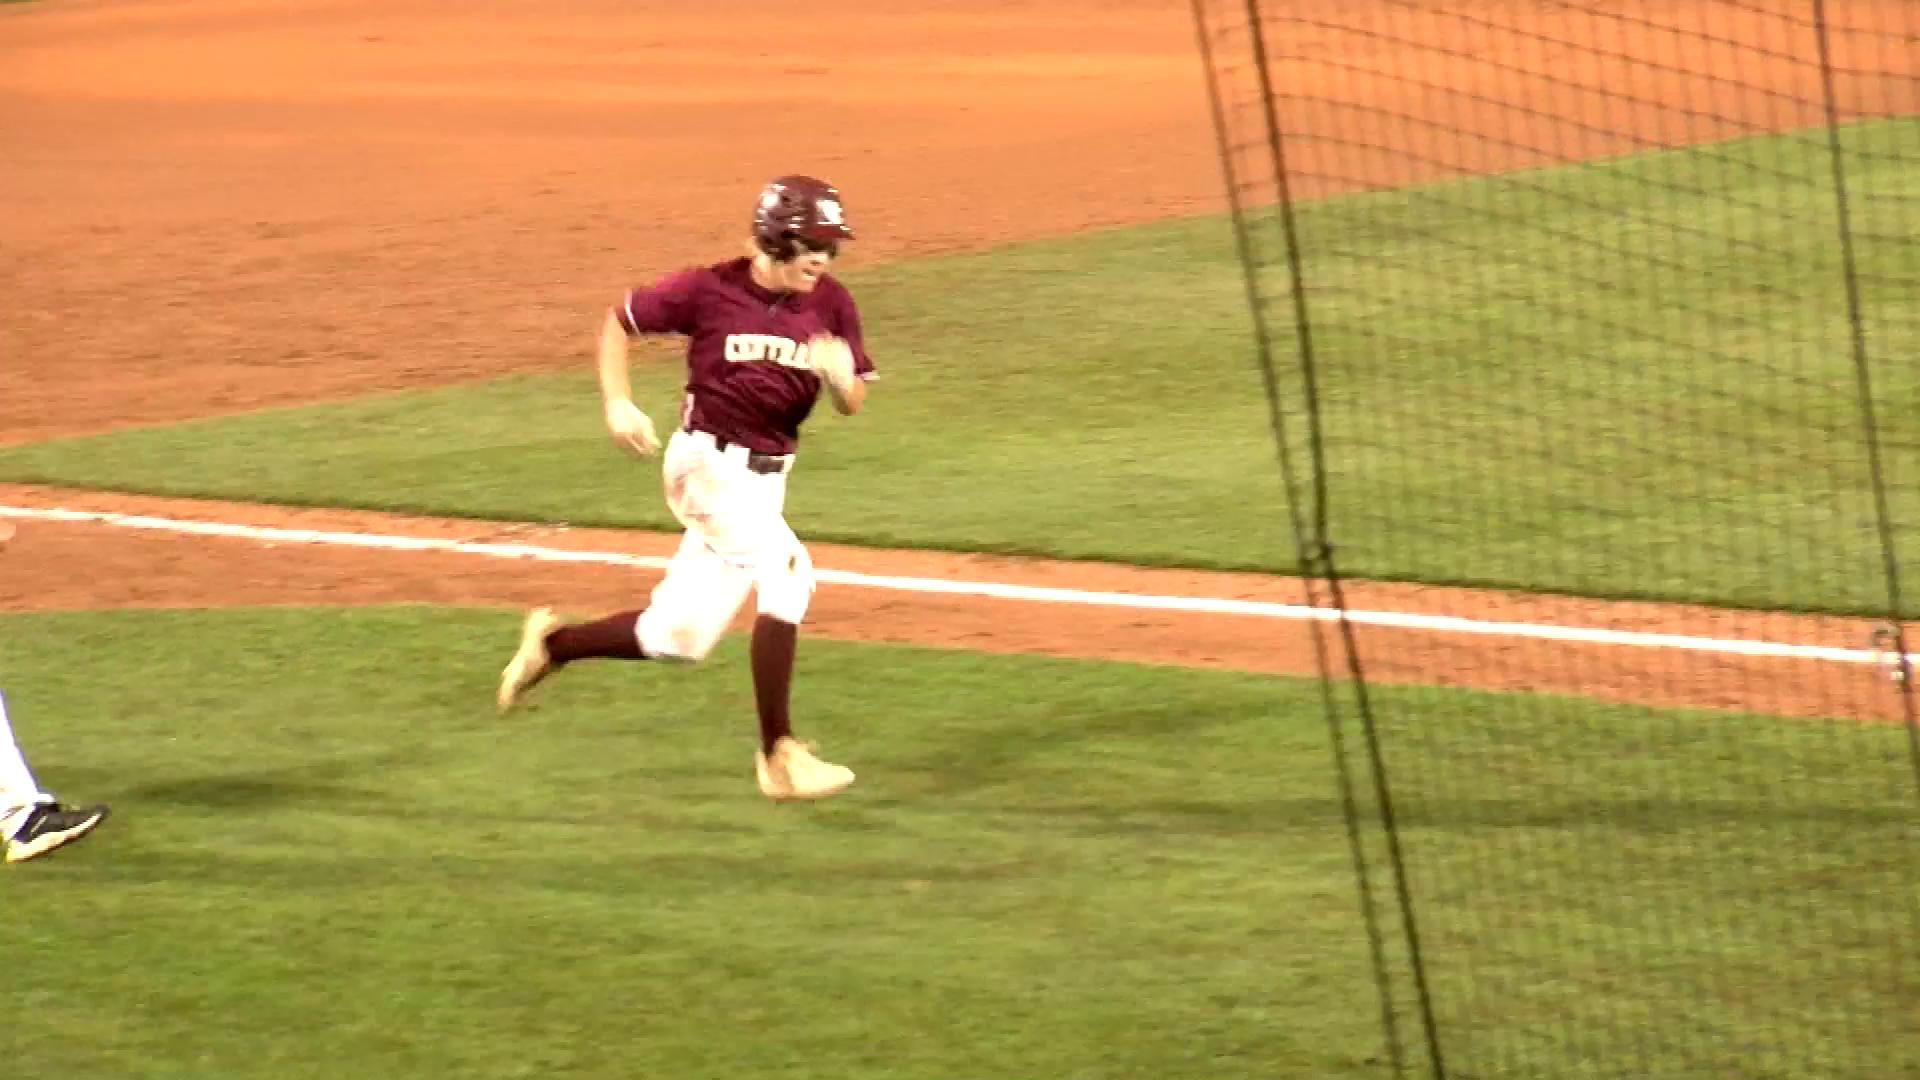 6.1.18 Highlights - Wheeling Central advances to Class A state final